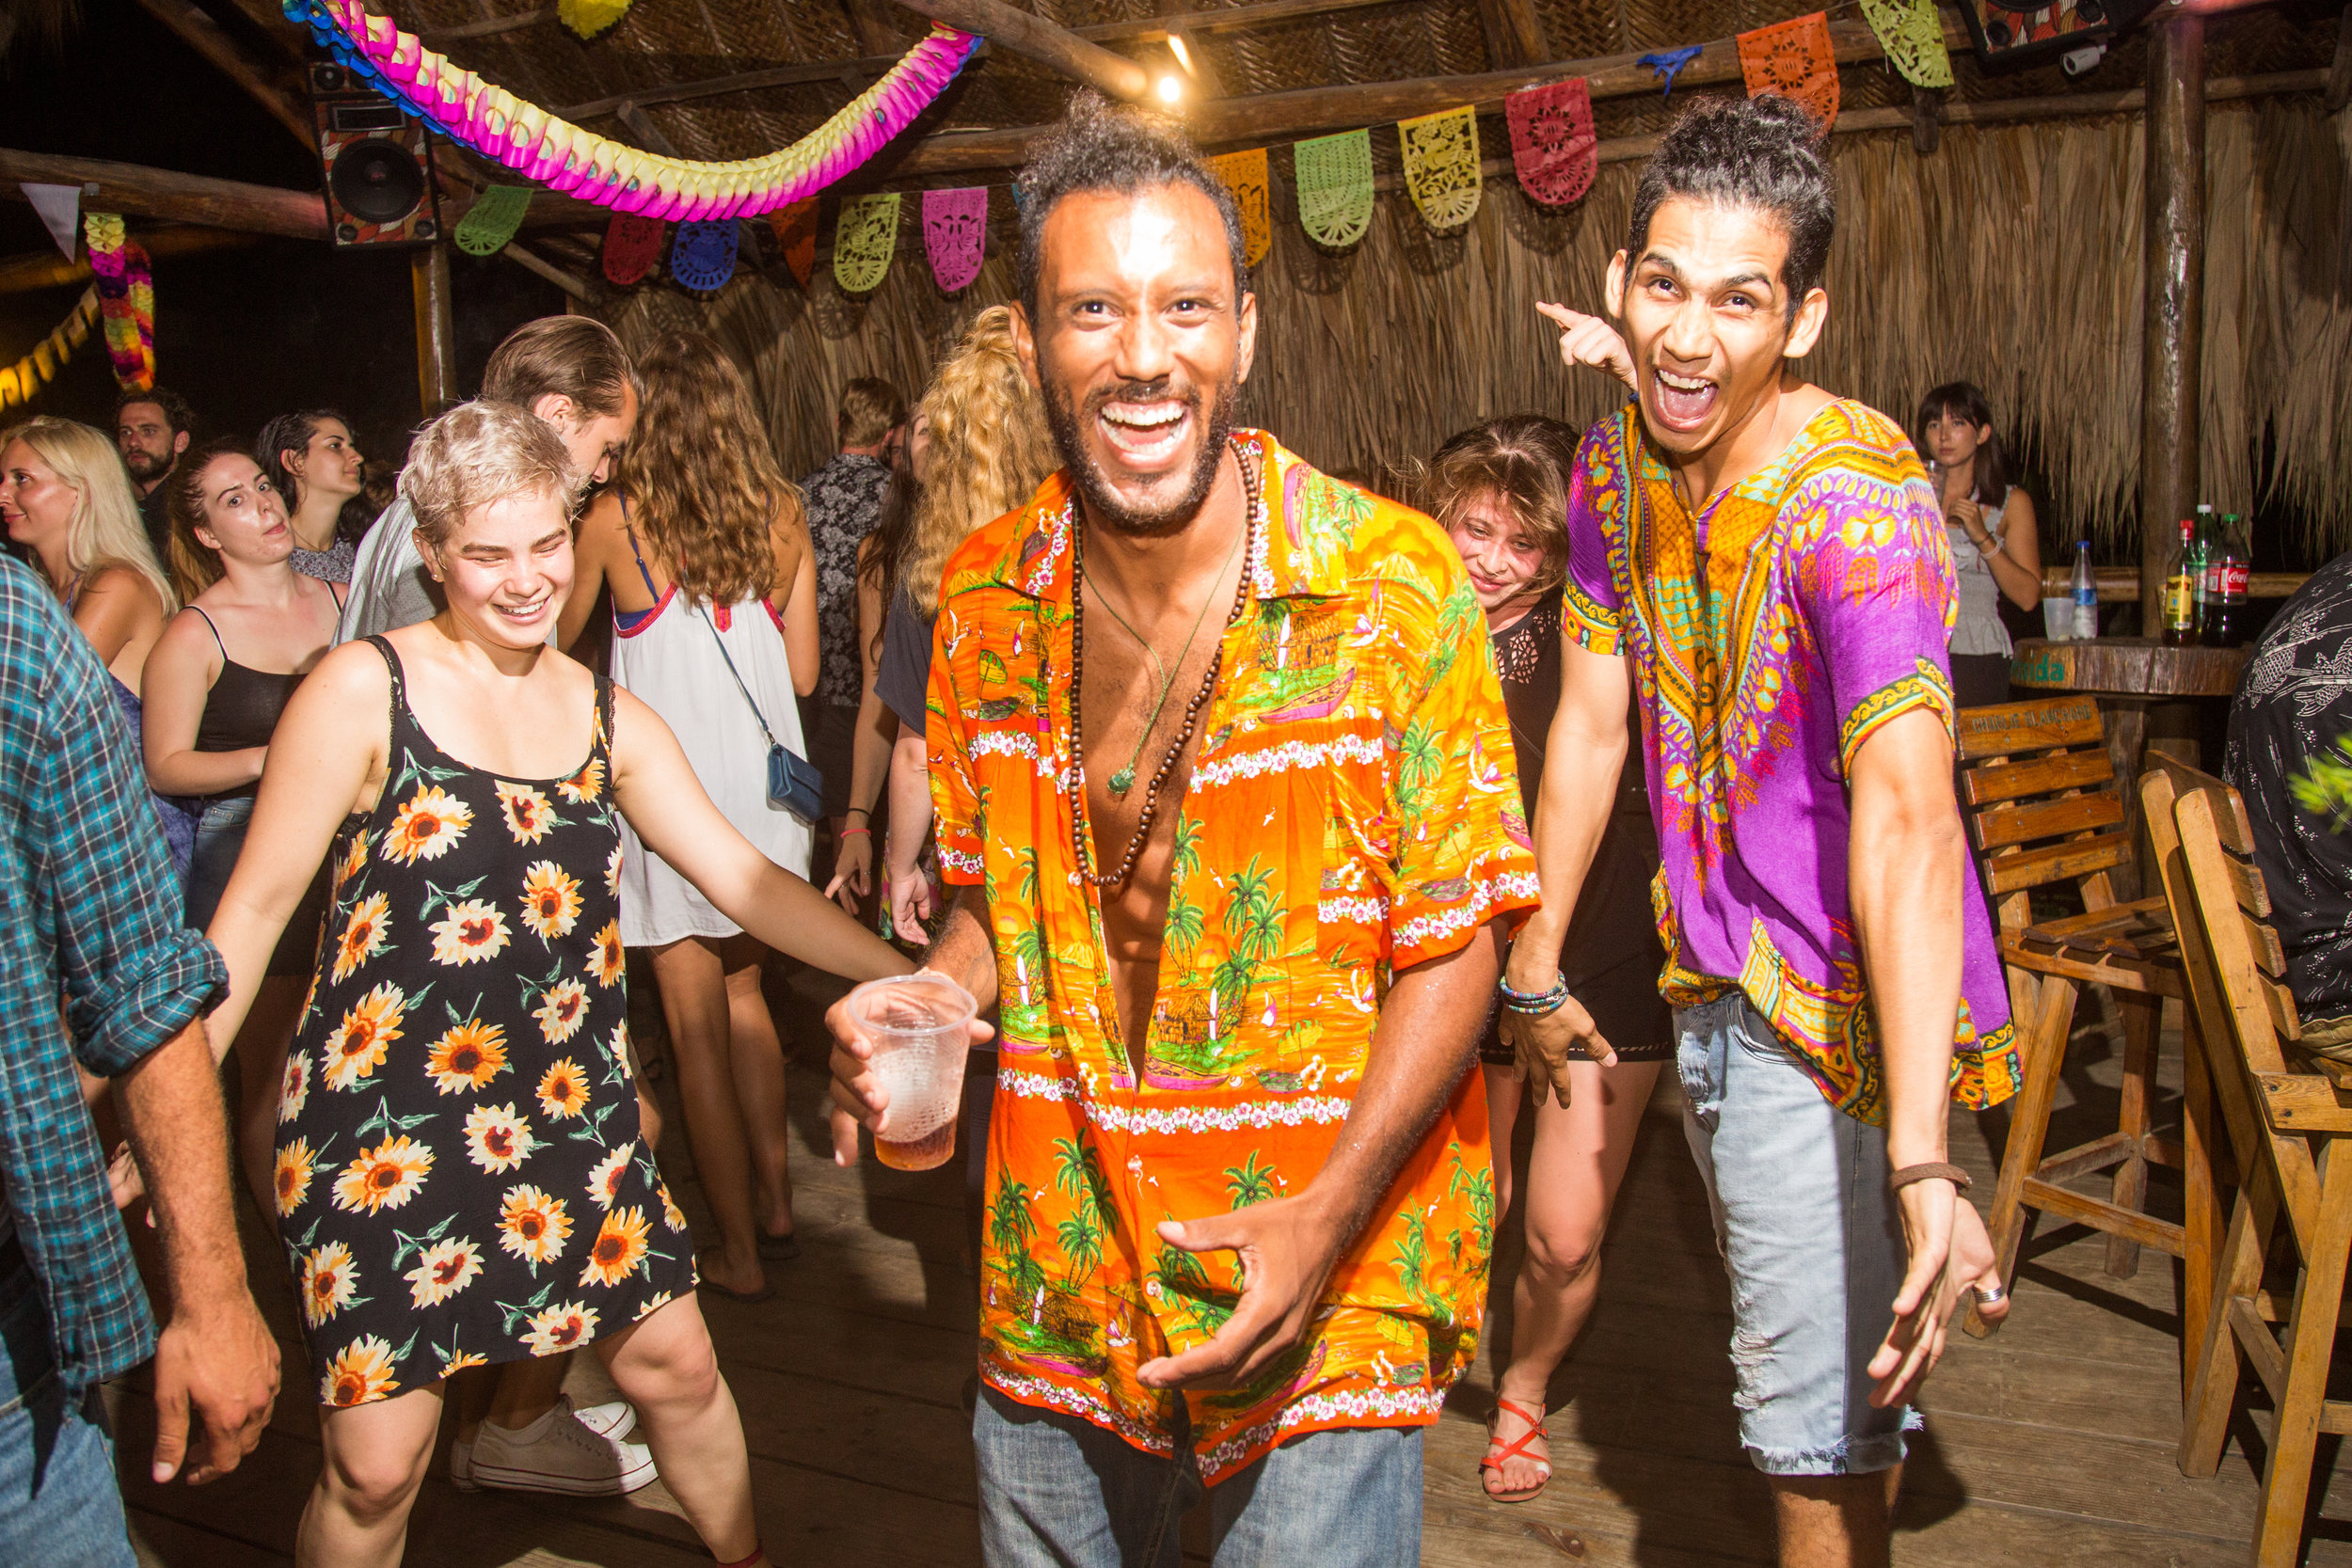 Monthly dance parties at El Rio Hostel